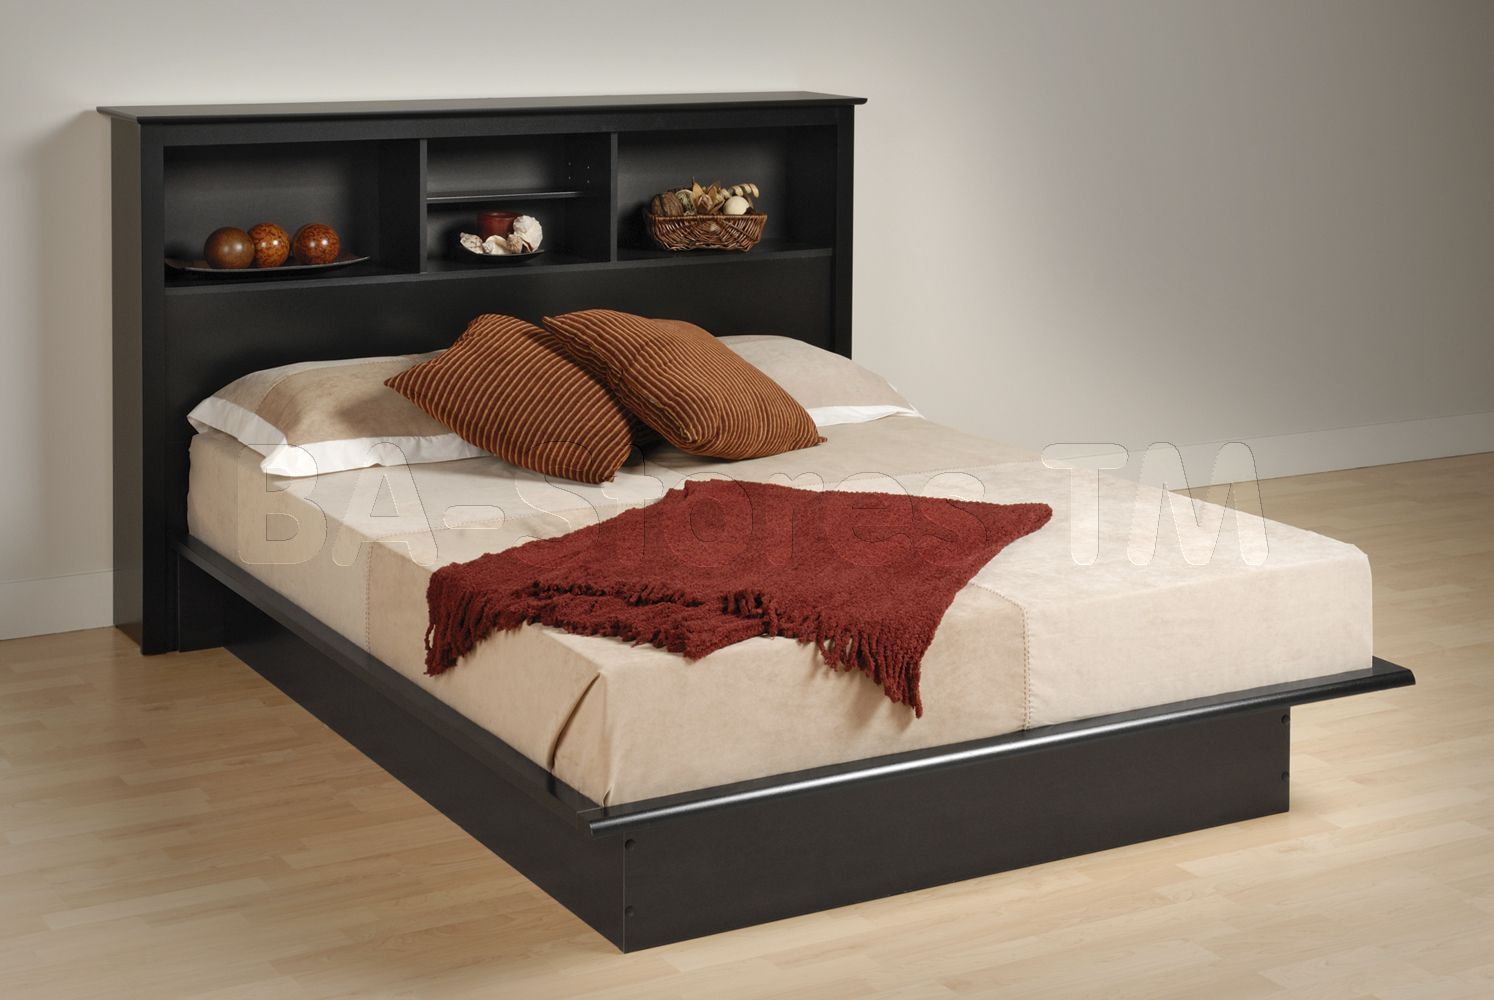 Bed Wooden Headboards Beds Storage Designs With Grey Painted Wall